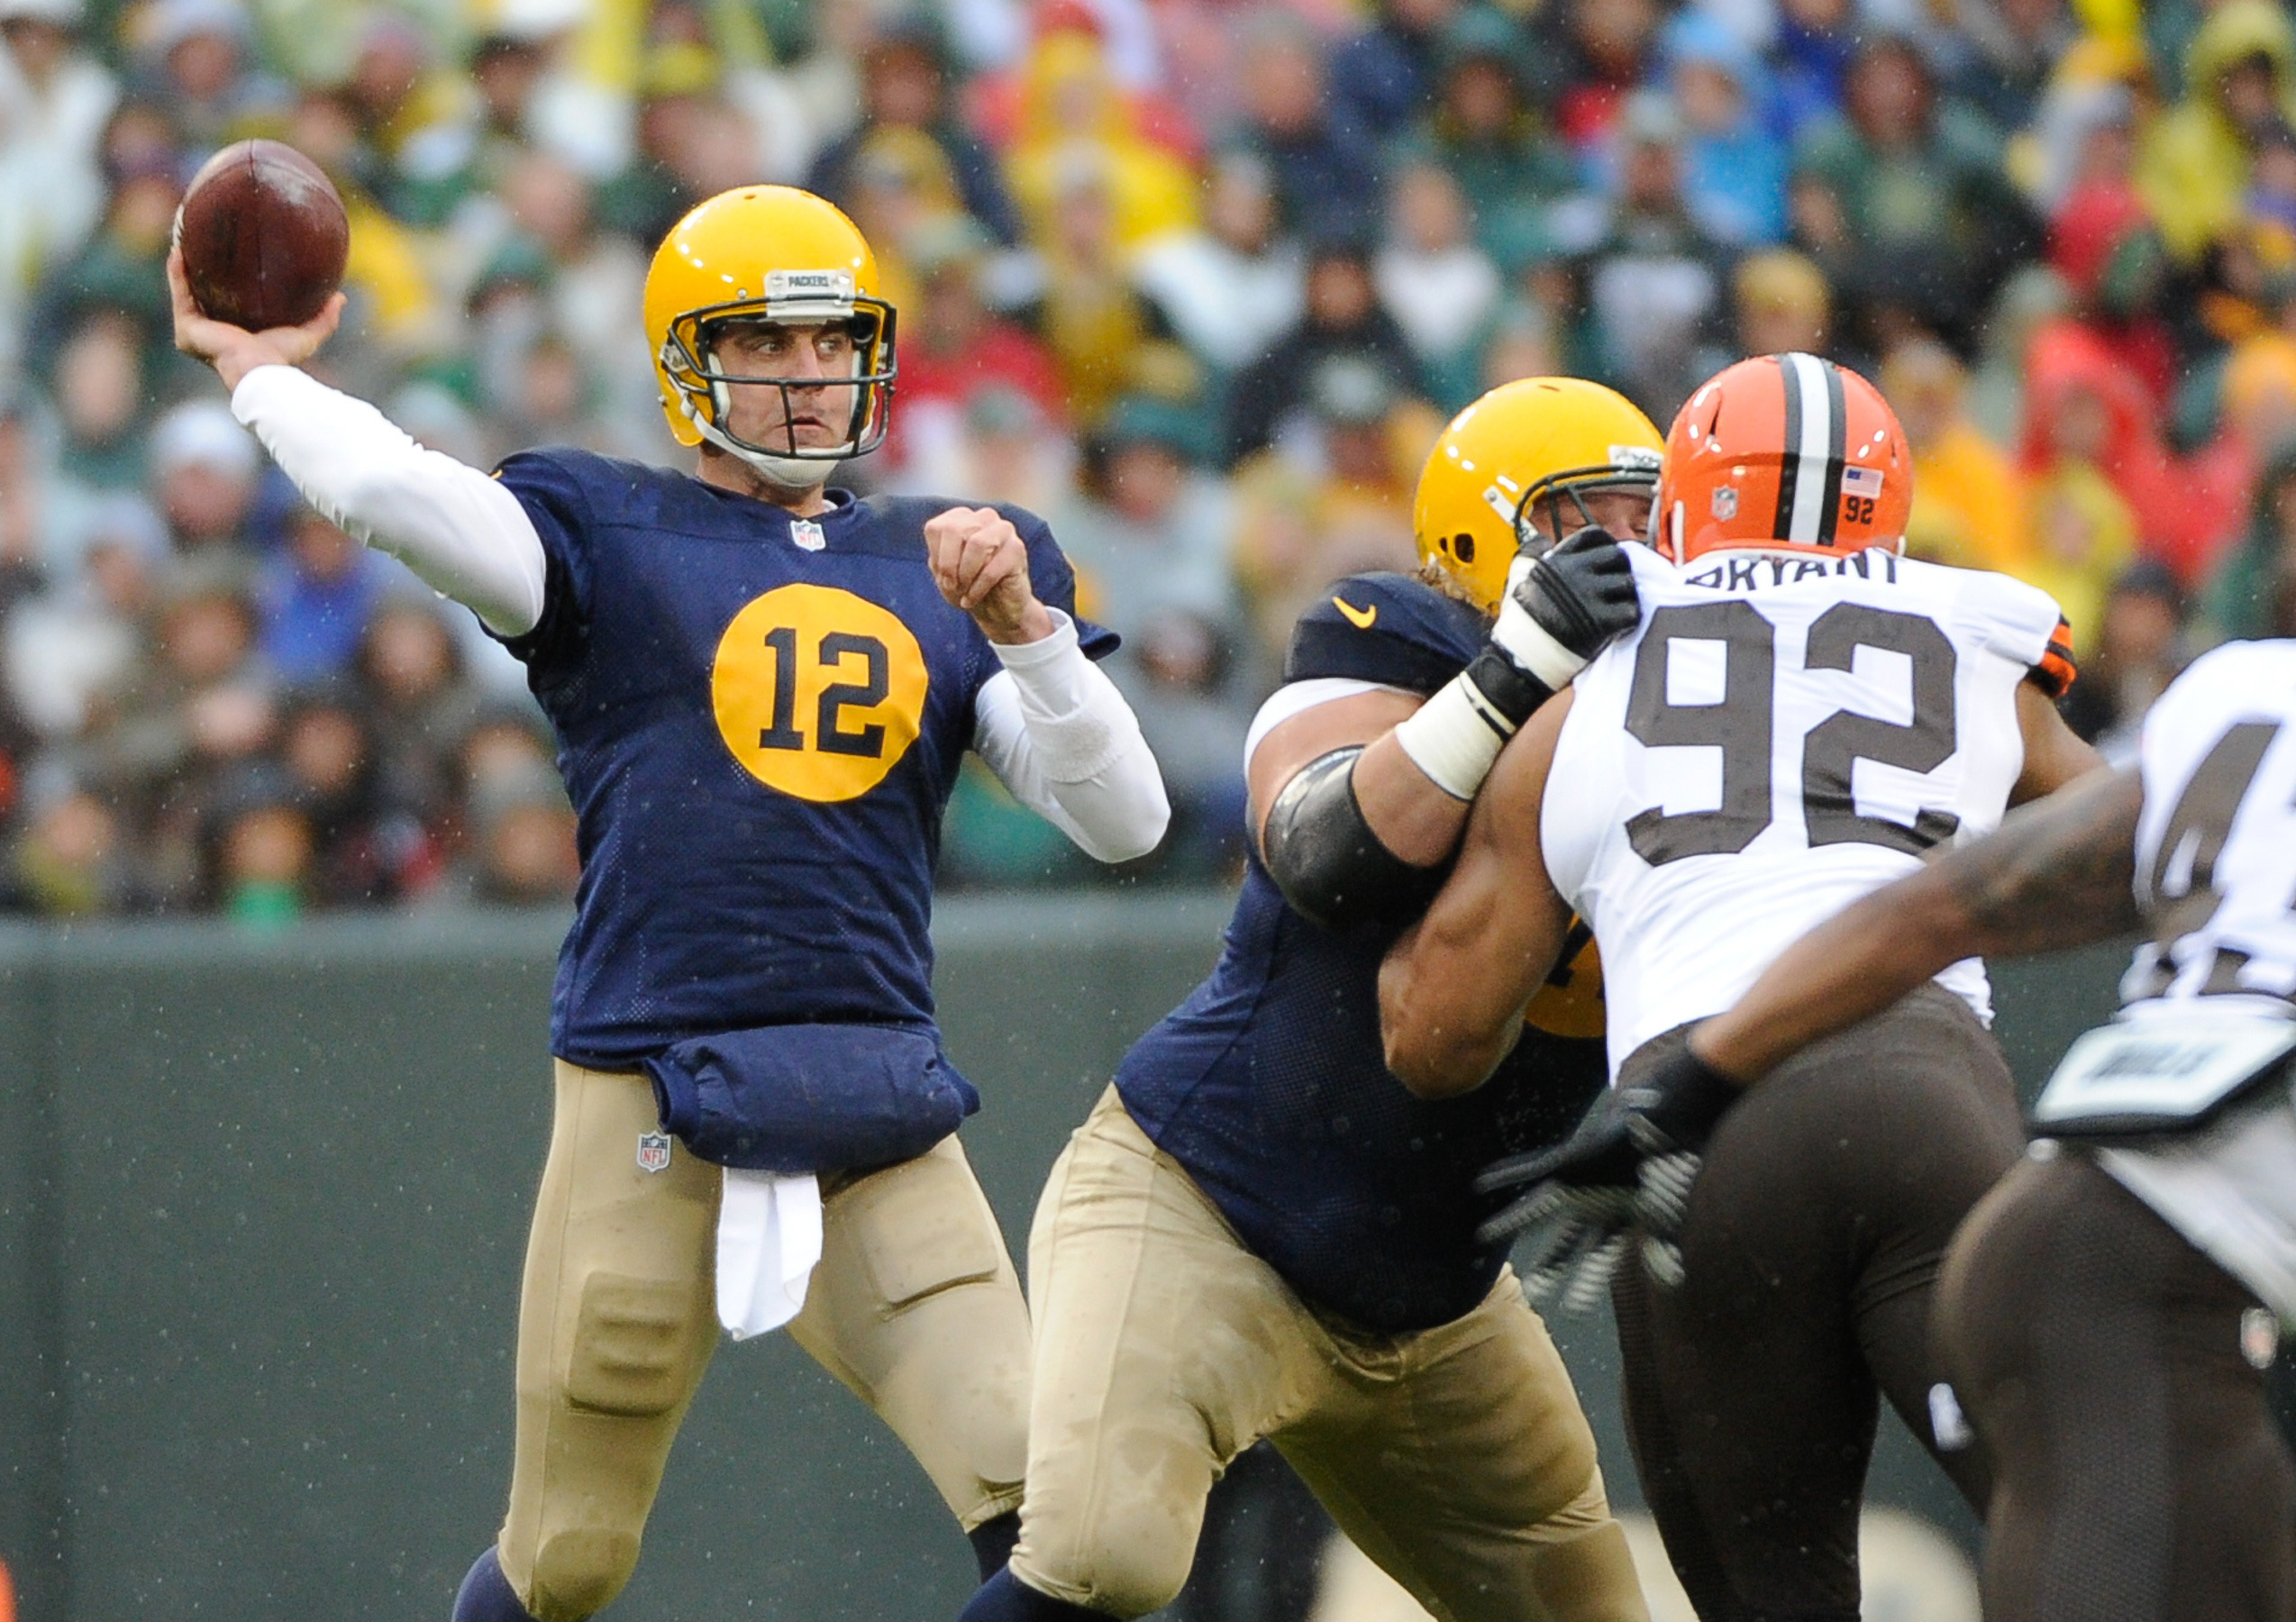 7504264-nfl-cleveland-browns-at-green-bay-packers